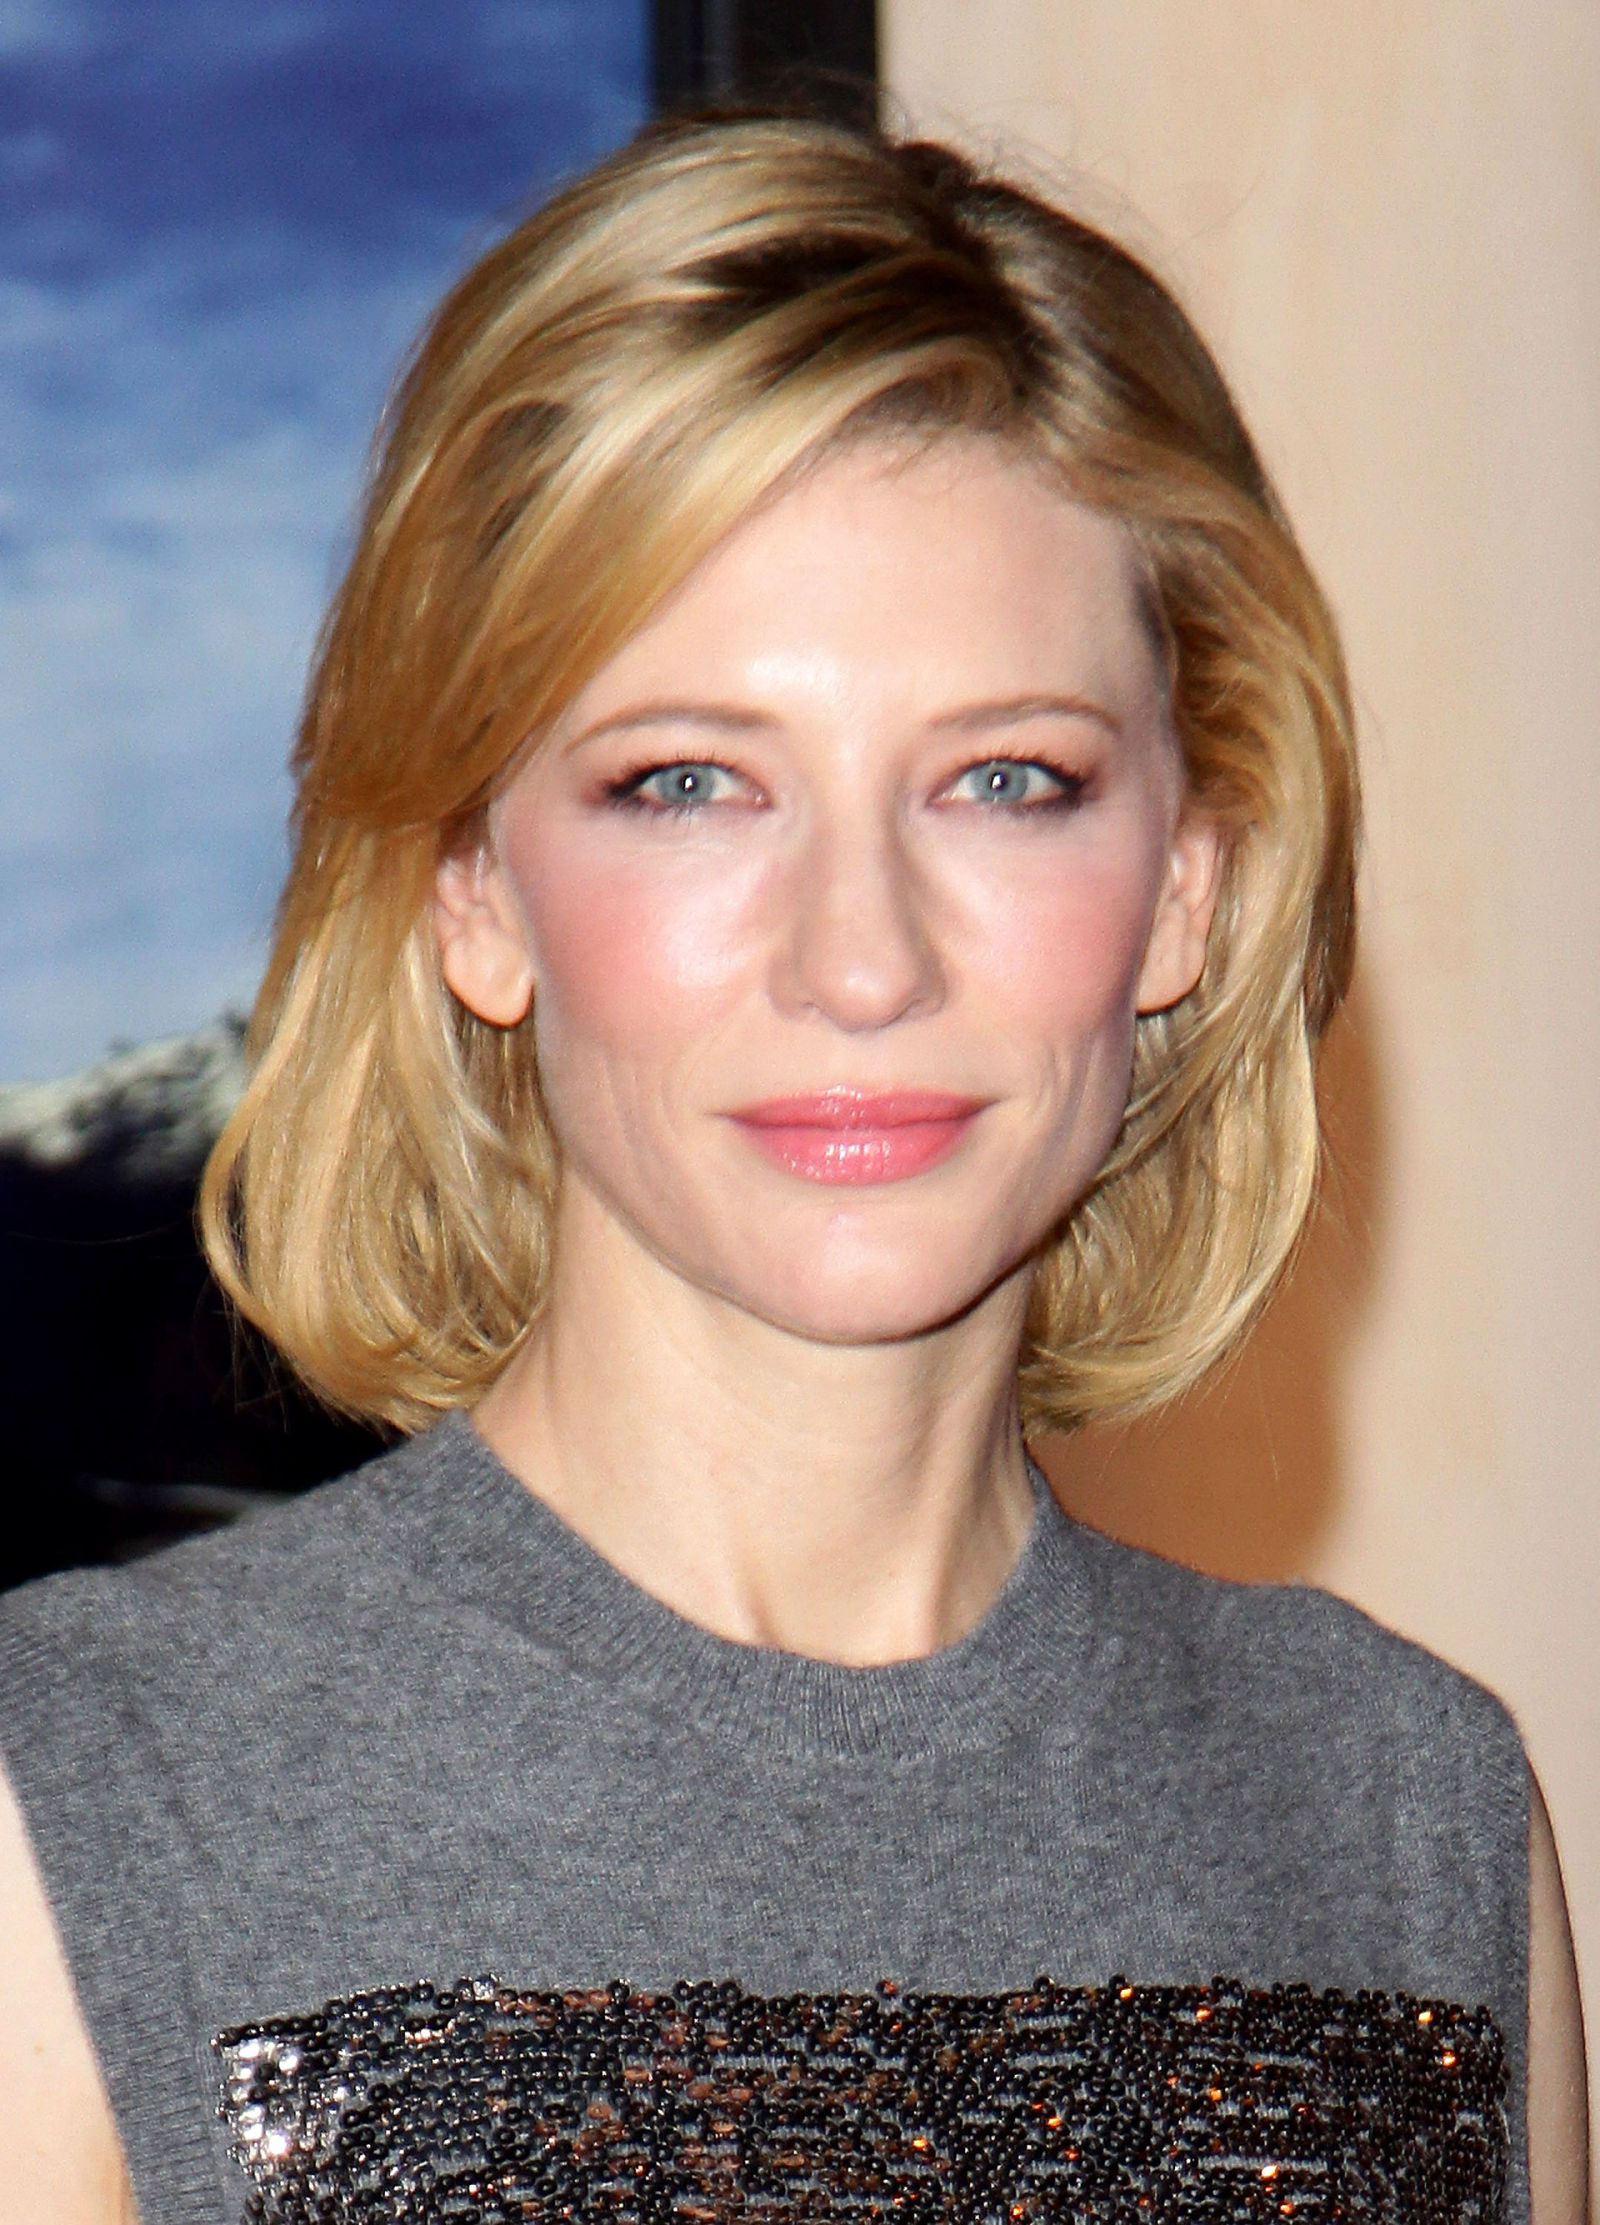 Square Face Celebrity Hairstyles